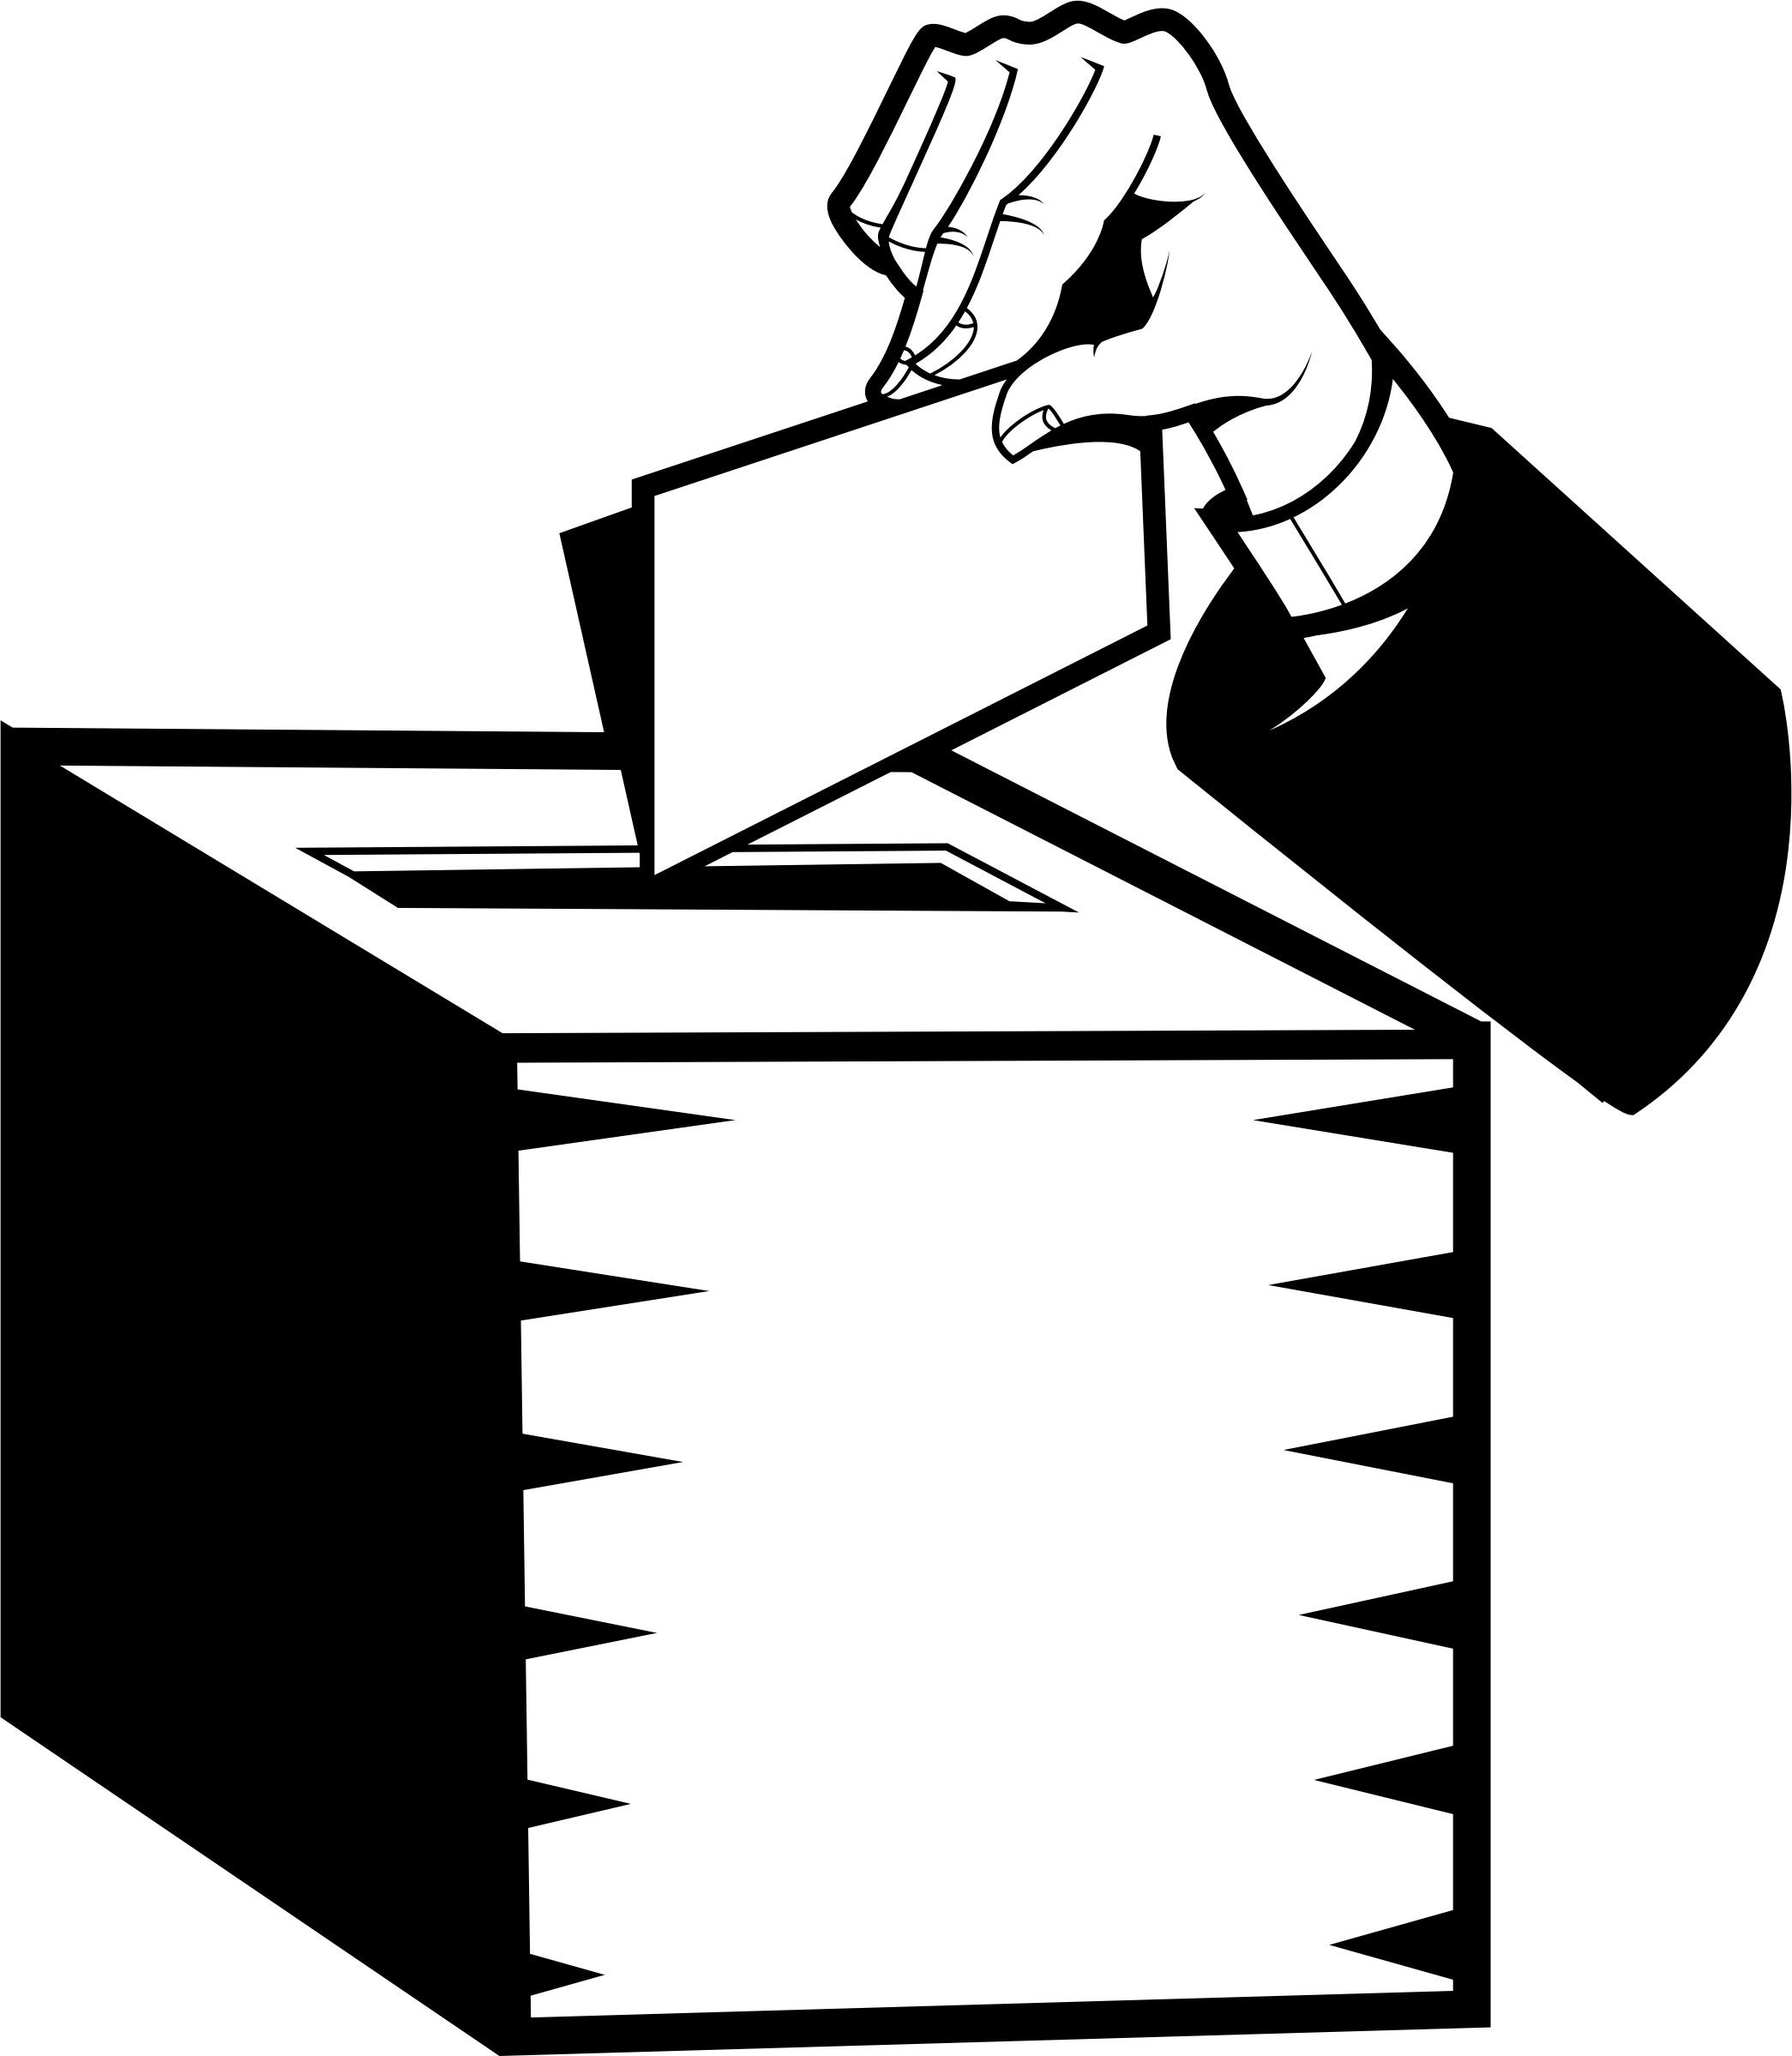 svg Vote clipart black and white. Box big image png